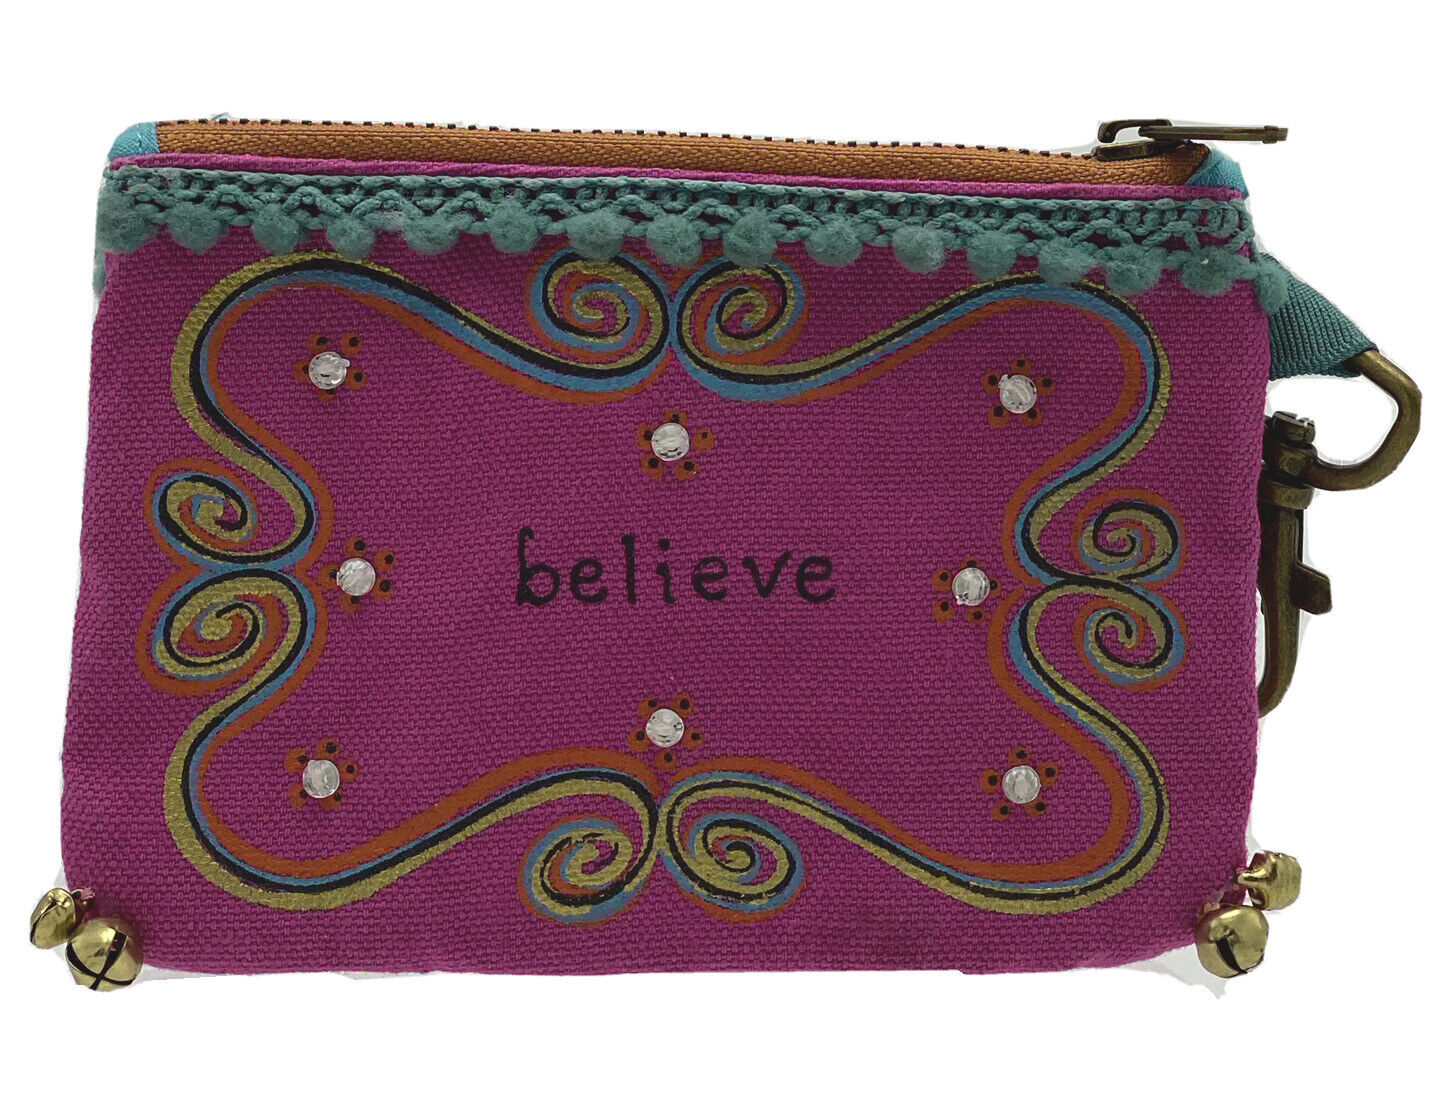 Natural Life Believe ID Credit Card BoHo Wallet Coin Purse Zipper Pouch Hook On